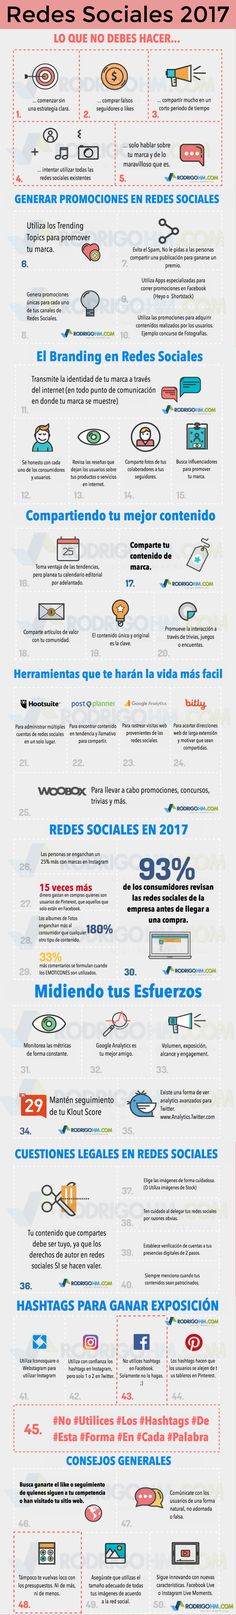 Redes Sociales 2017 - Tap the link now to Learn how I made it to 1 million in sales in 5 months with e-commerce! I'll give you the 3 advertising phases I did to make it for FREE!